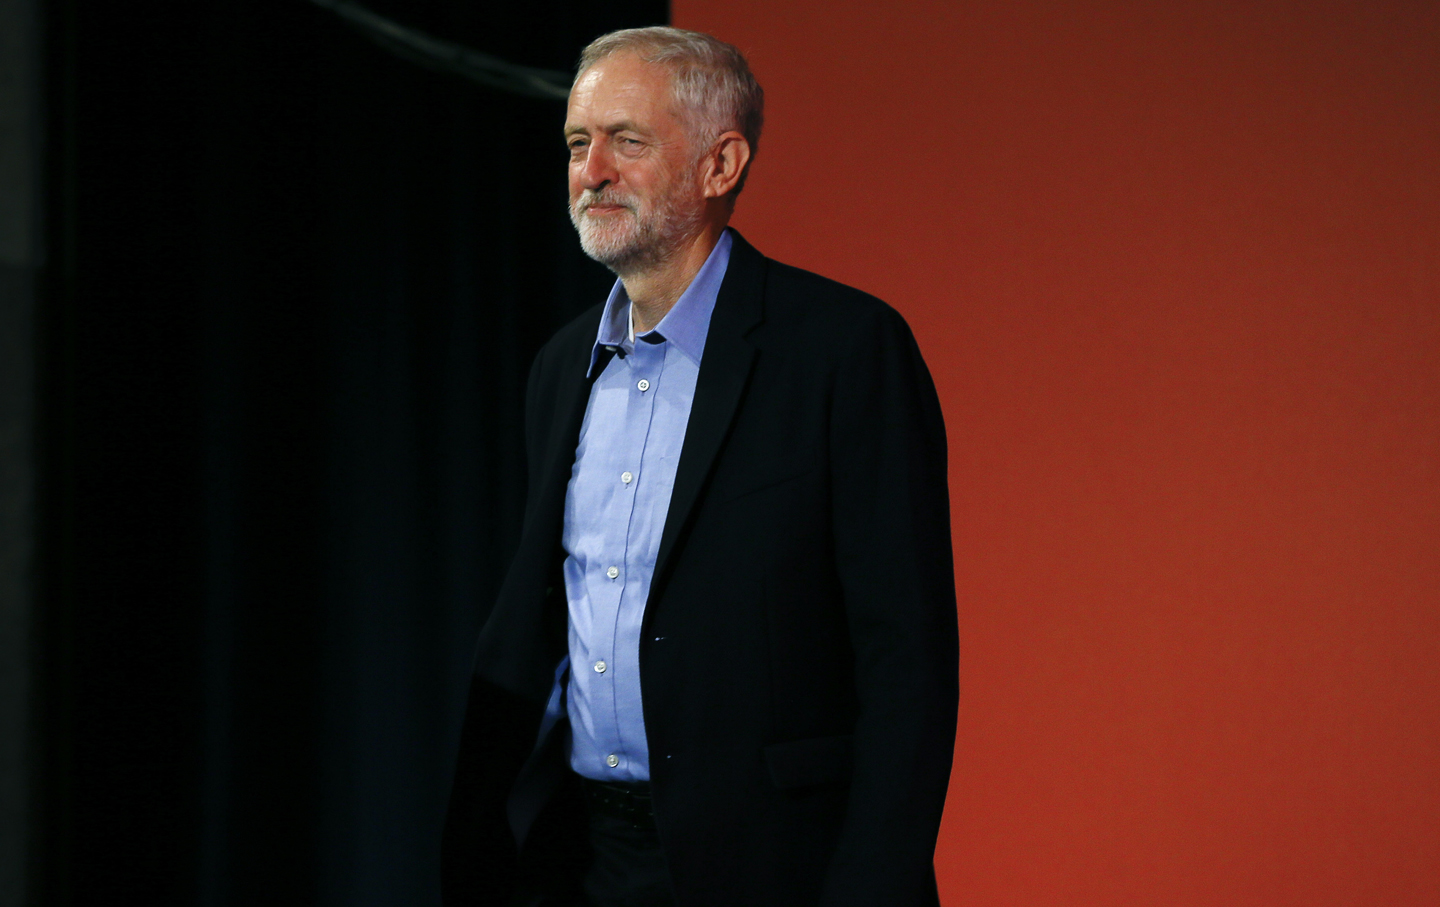 Jeremy Corbyn arrives at the Labour Party Leadership Conference.